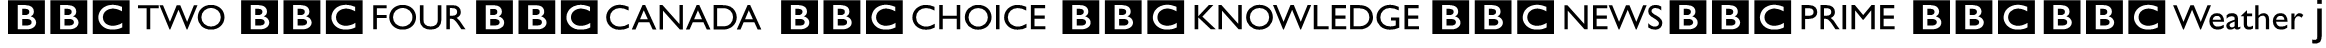 BBC Striped Channel Logos Font